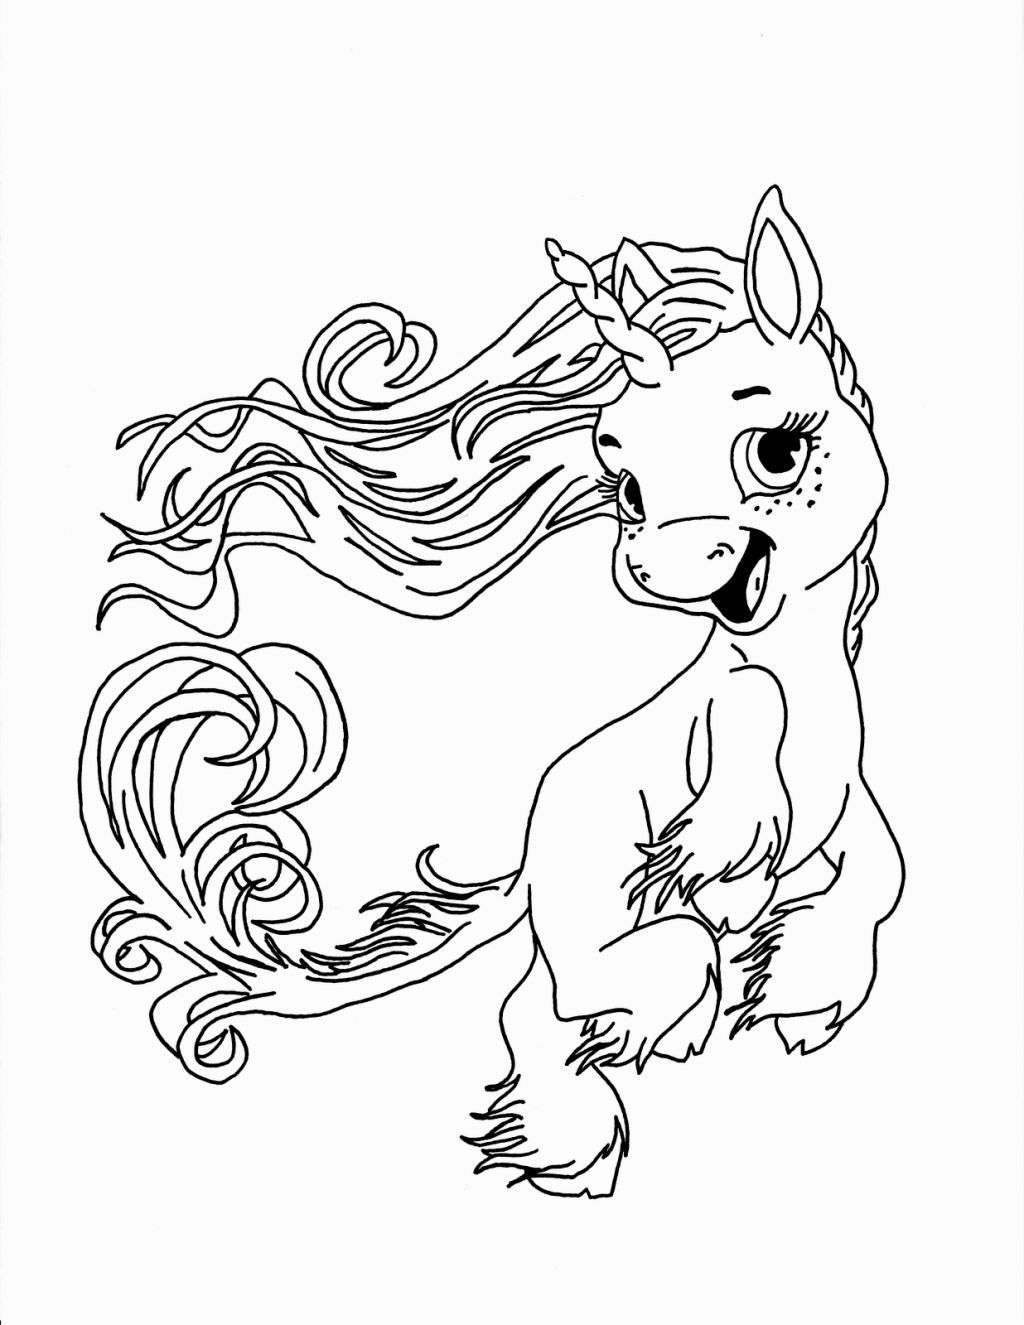 Unicorn Coloring Pages | Unicorns, Coloring books and Embroidery